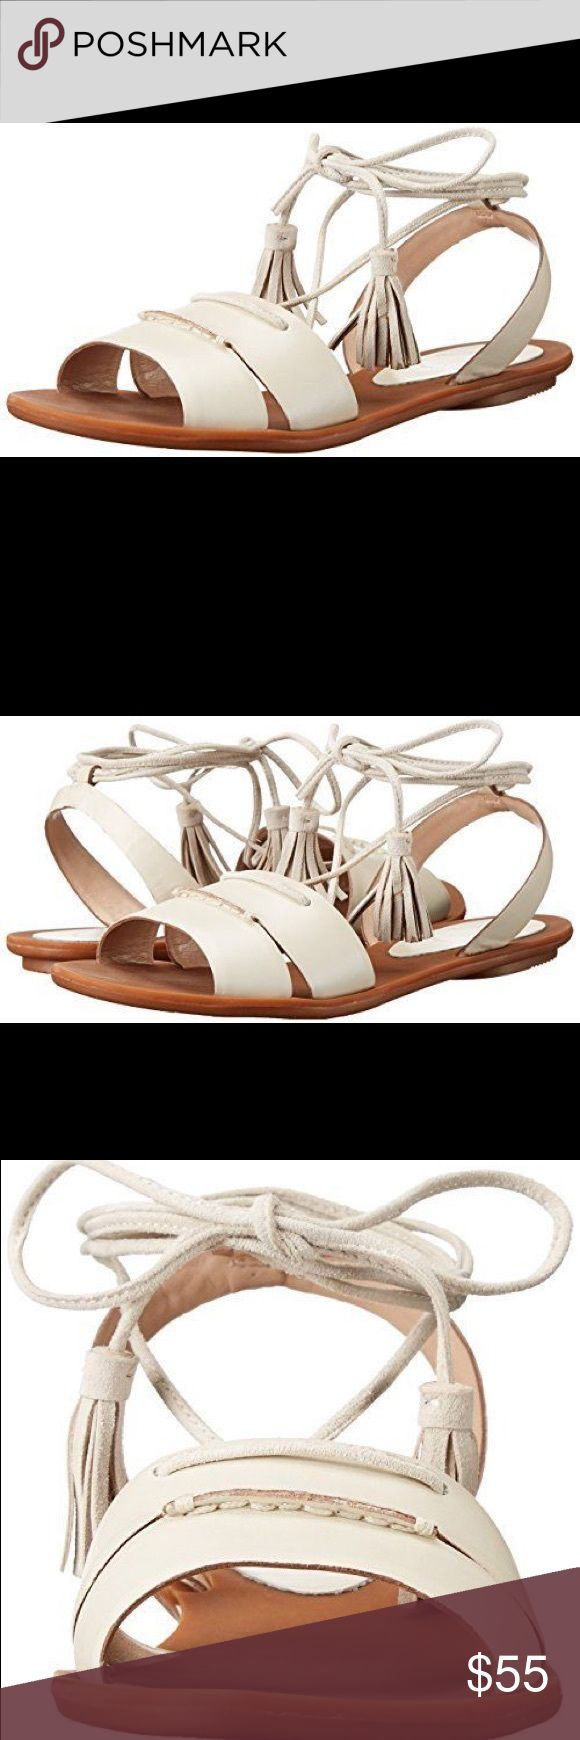 French Connection Bobbie Flat Sandal Flat sandal with ankle lacing and tassels Imported Synthetic sole Leather upper Color: Brule French Connection Shoes Sandals